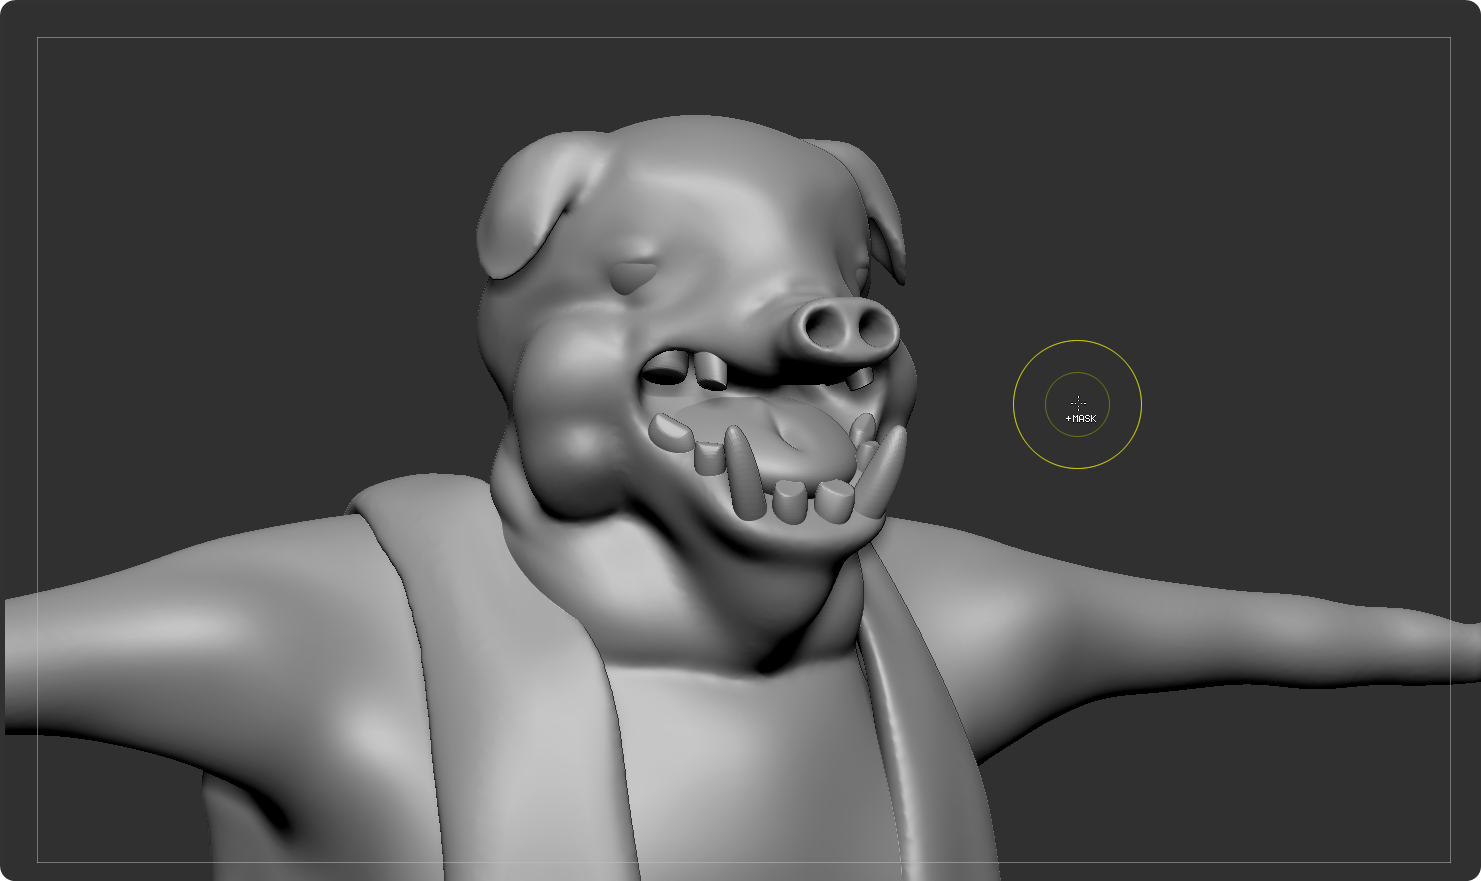 ZBrushCore_2016-10-22_08-54-03.png